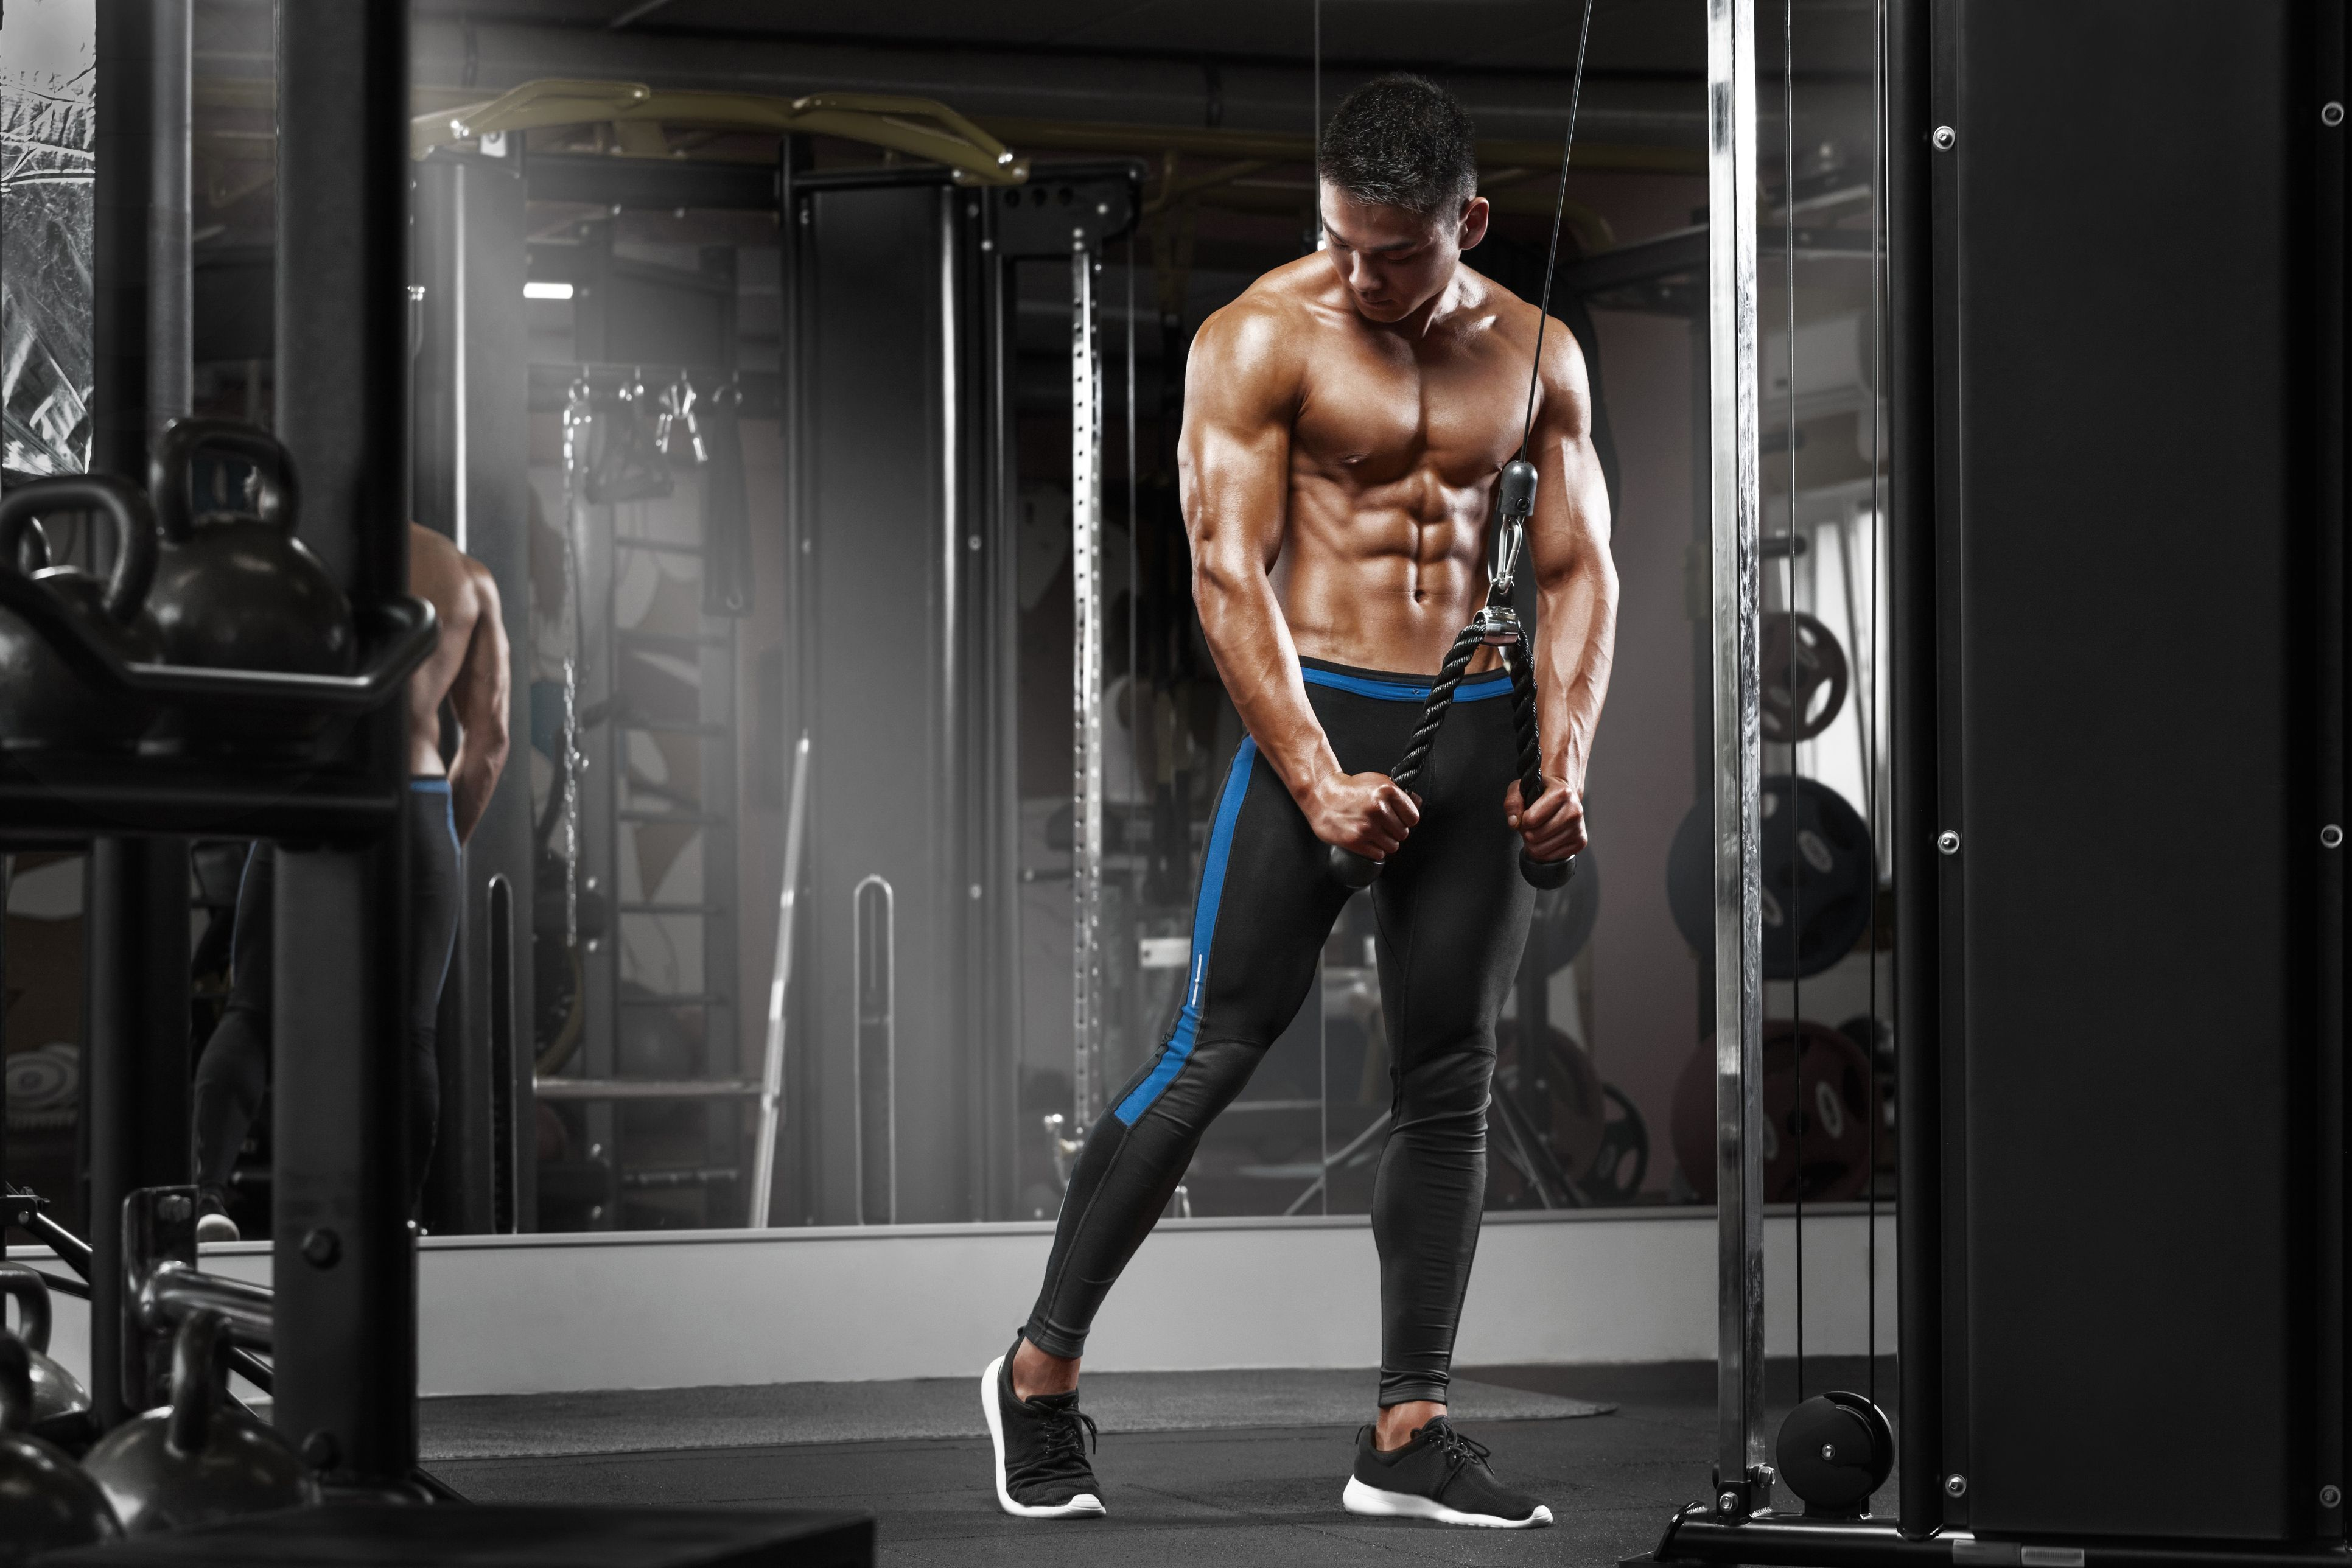 Tricep exercises of the best to build muscle